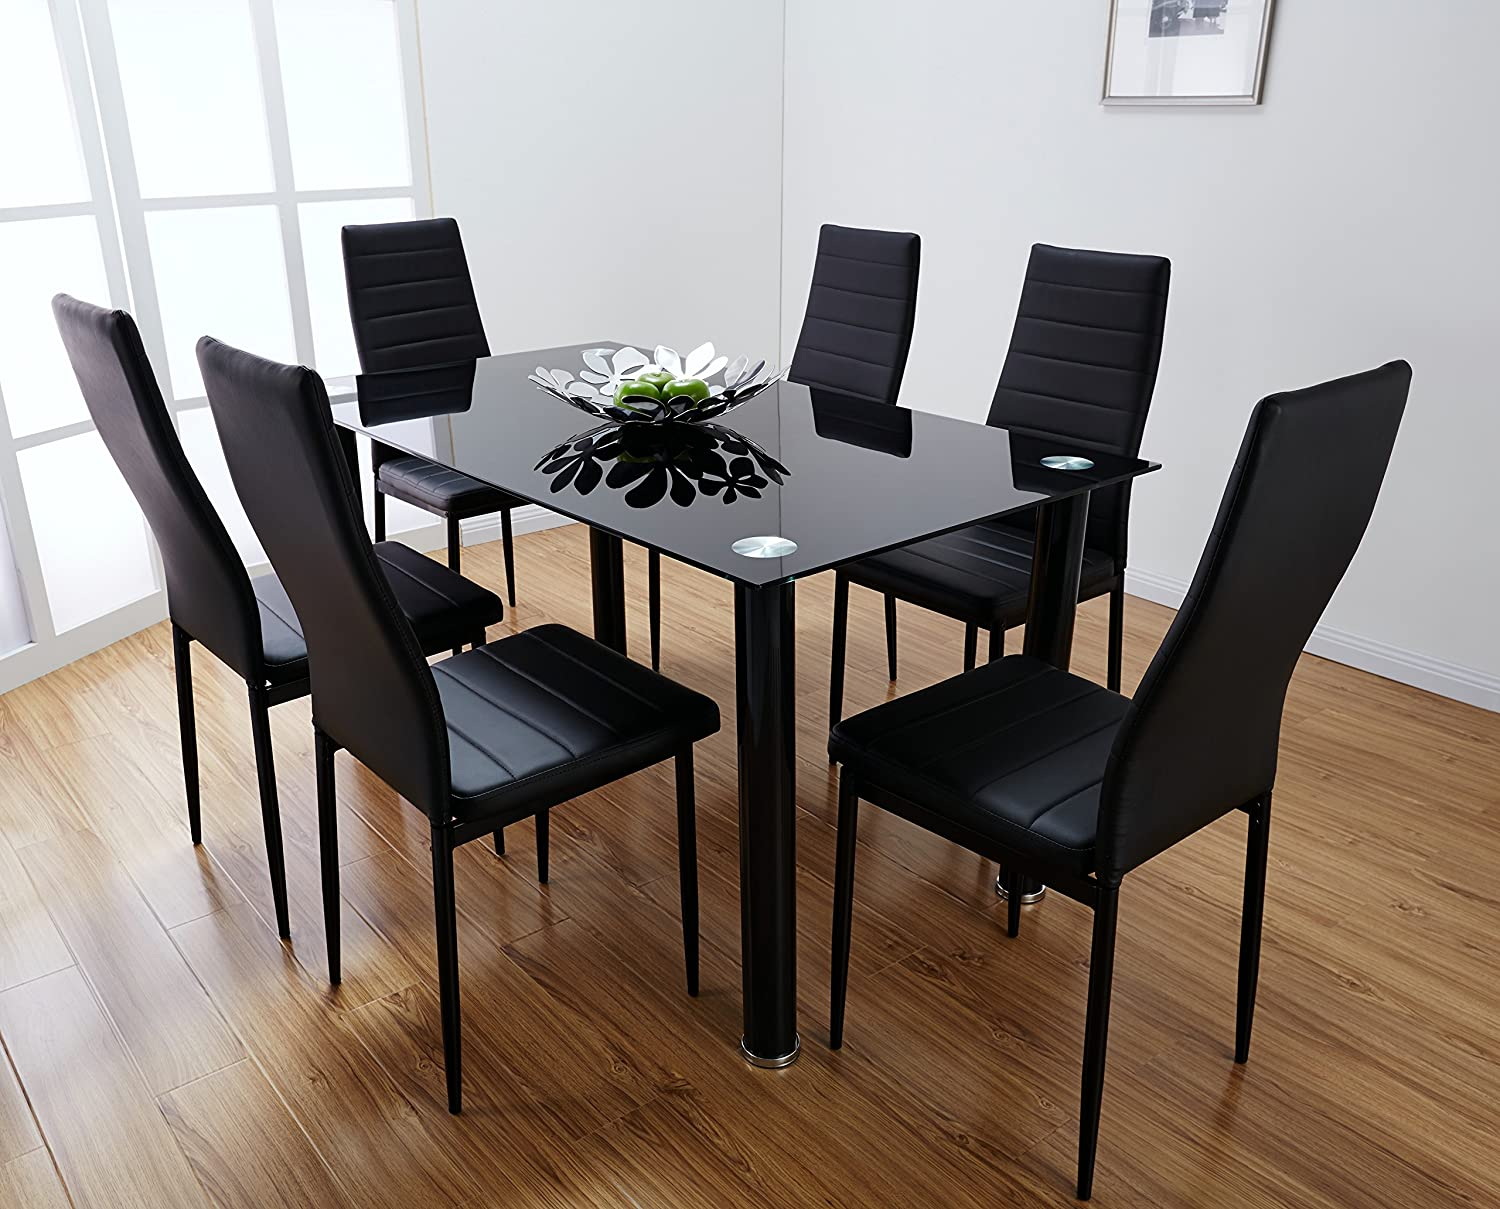 Top 20 Best Dining Tables and Chairs Reviews 2016 2017 on Flipboard